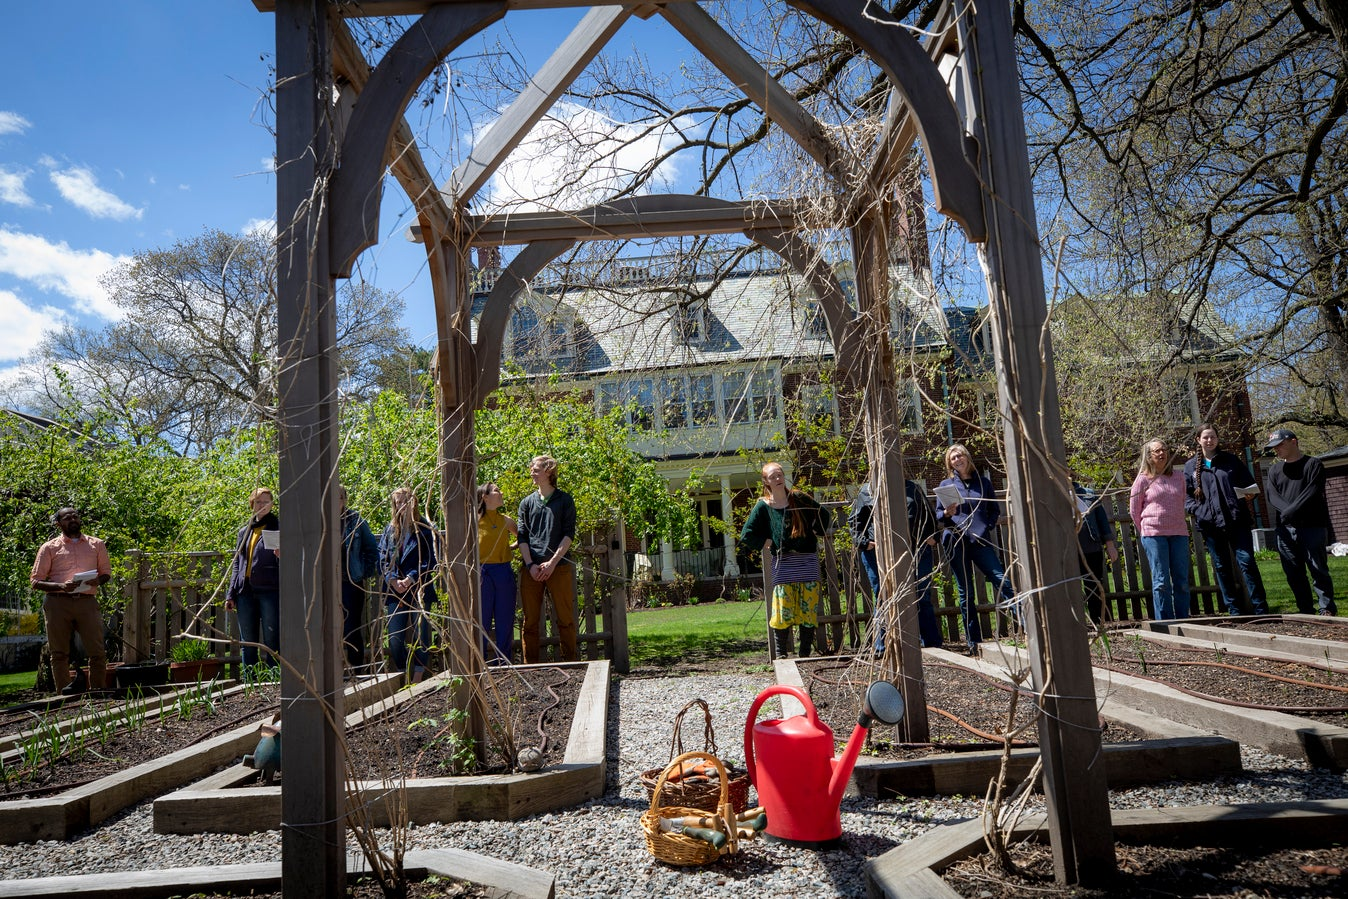 Group of students gather around a community garden on Harvard's campus